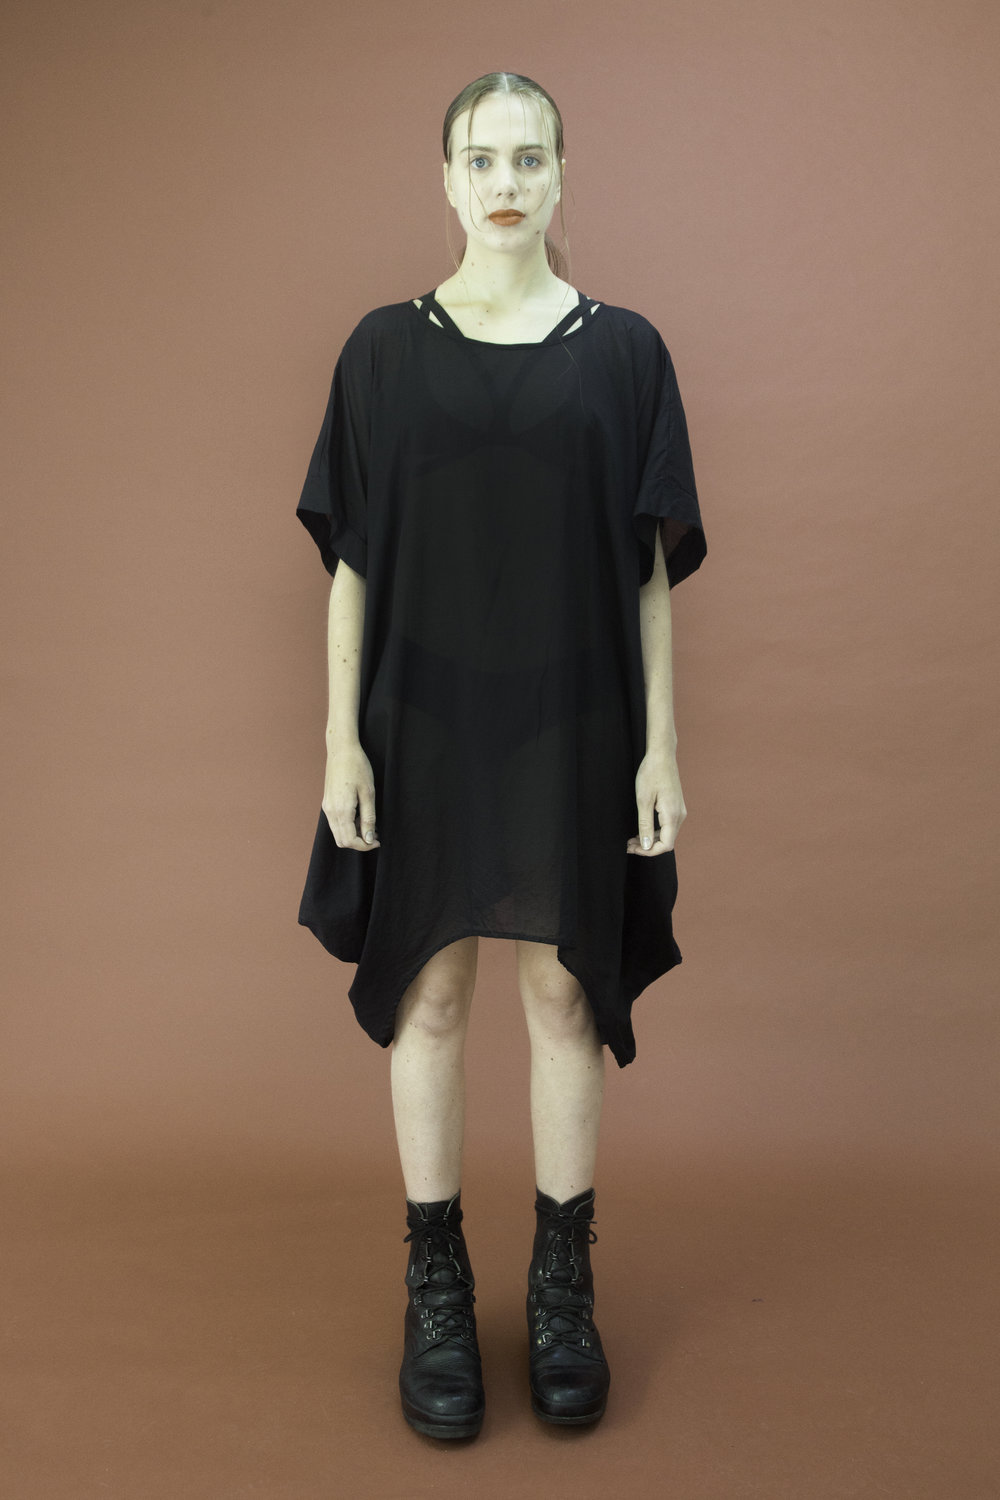 crow-dress-cotton-jason-lingard-agoraphobia-collective